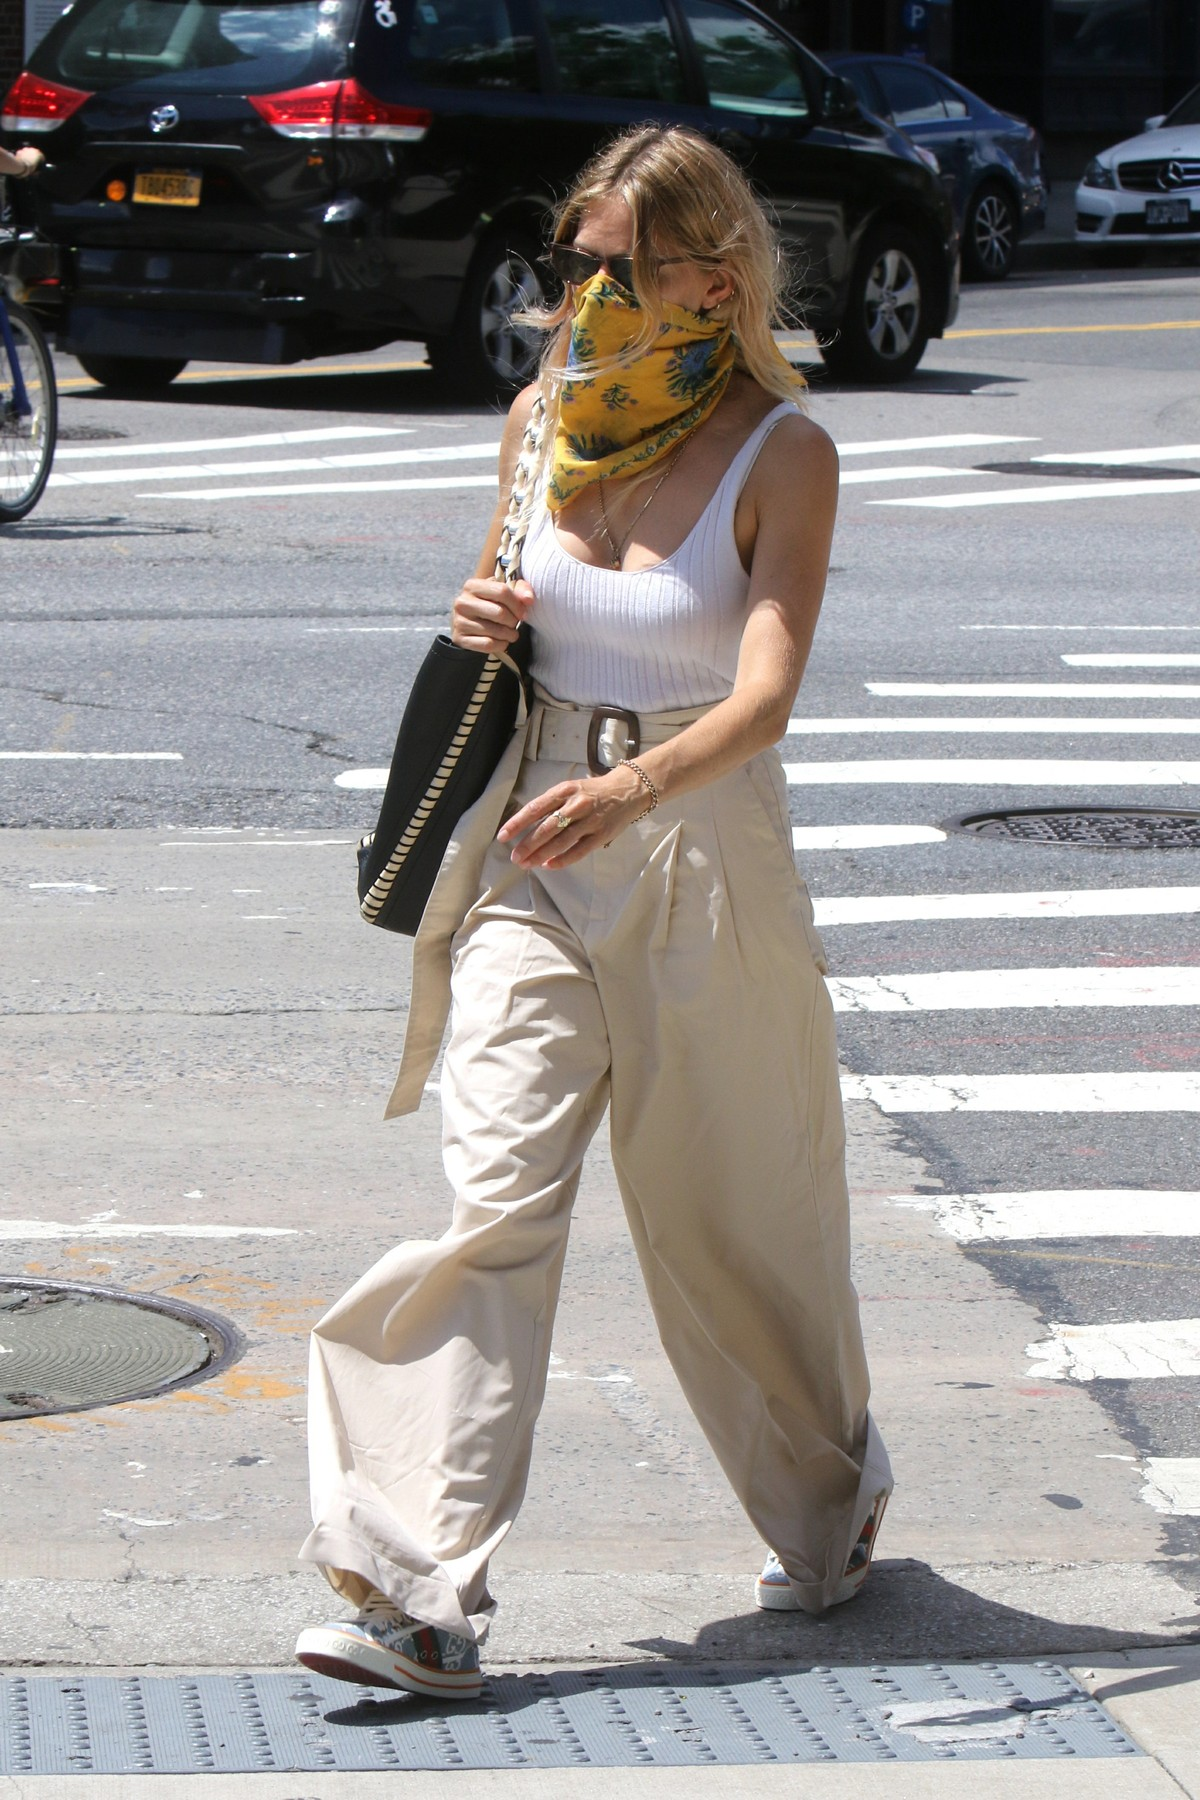 , New York, NY - 20200728 Sienna Miller and Tom Sturridge pictured out and about in the West Village.  -PICTURED: Sienna Miller  -,Image: 547987225, License: Rights-managed, Restrictions: , Model Release: no, Credit line: Jose Perez/INSTARimages.com / INSTAR Images / Profimedia